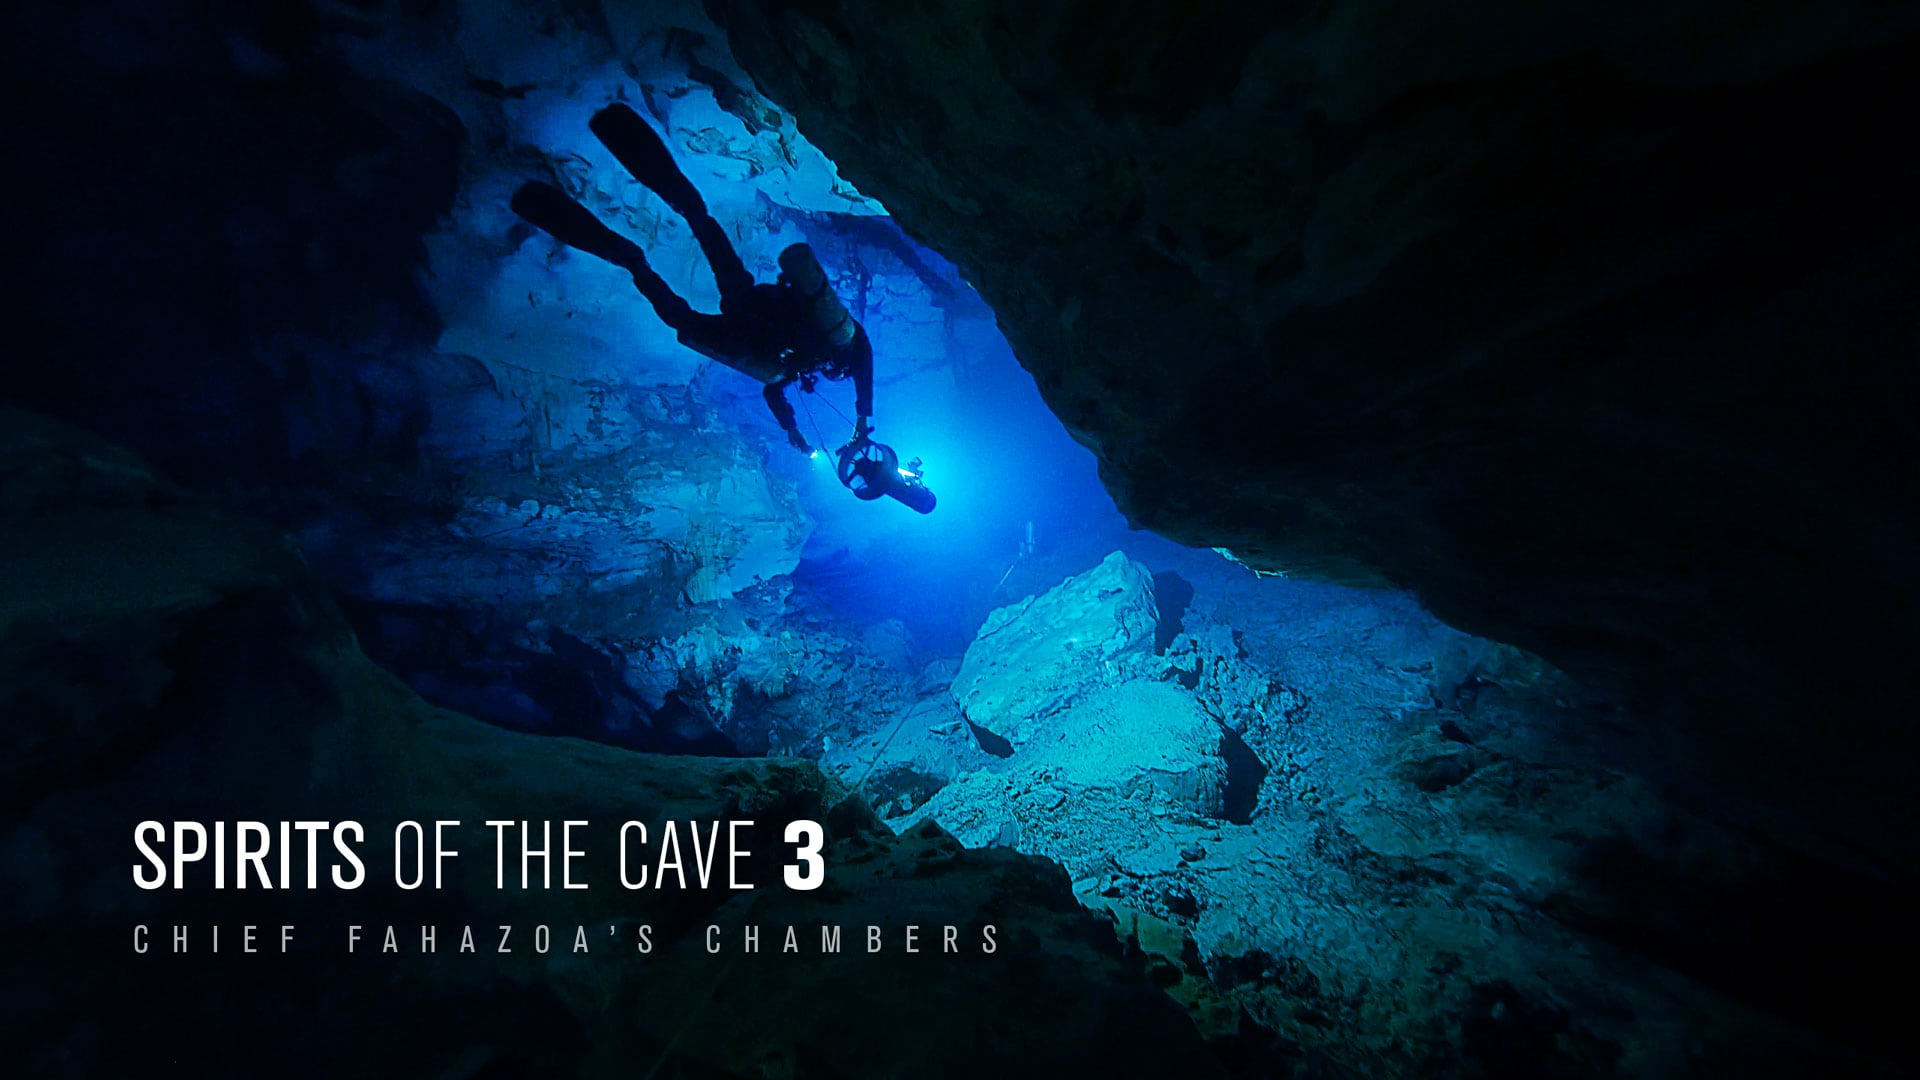 Spirits of the Cave 3